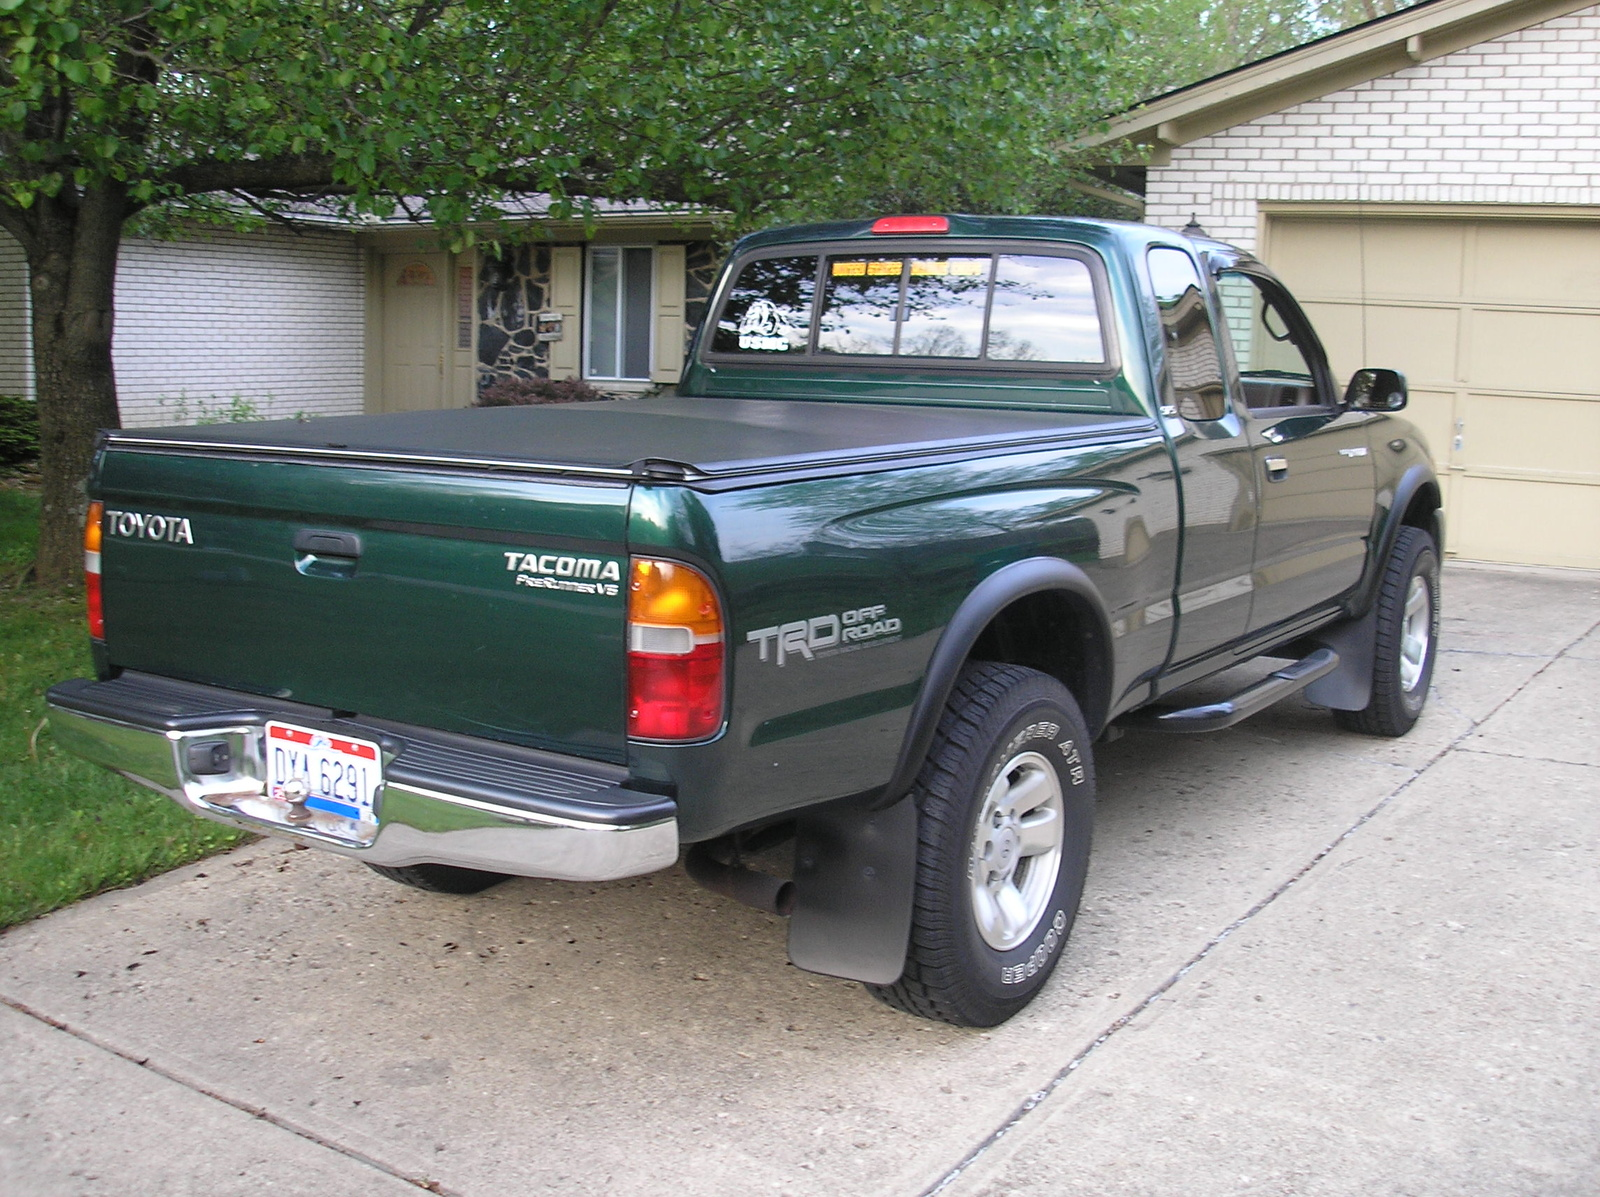 99 toyota tacoma ext cab prerunner specifications. Black Bedroom Furniture Sets. Home Design Ideas